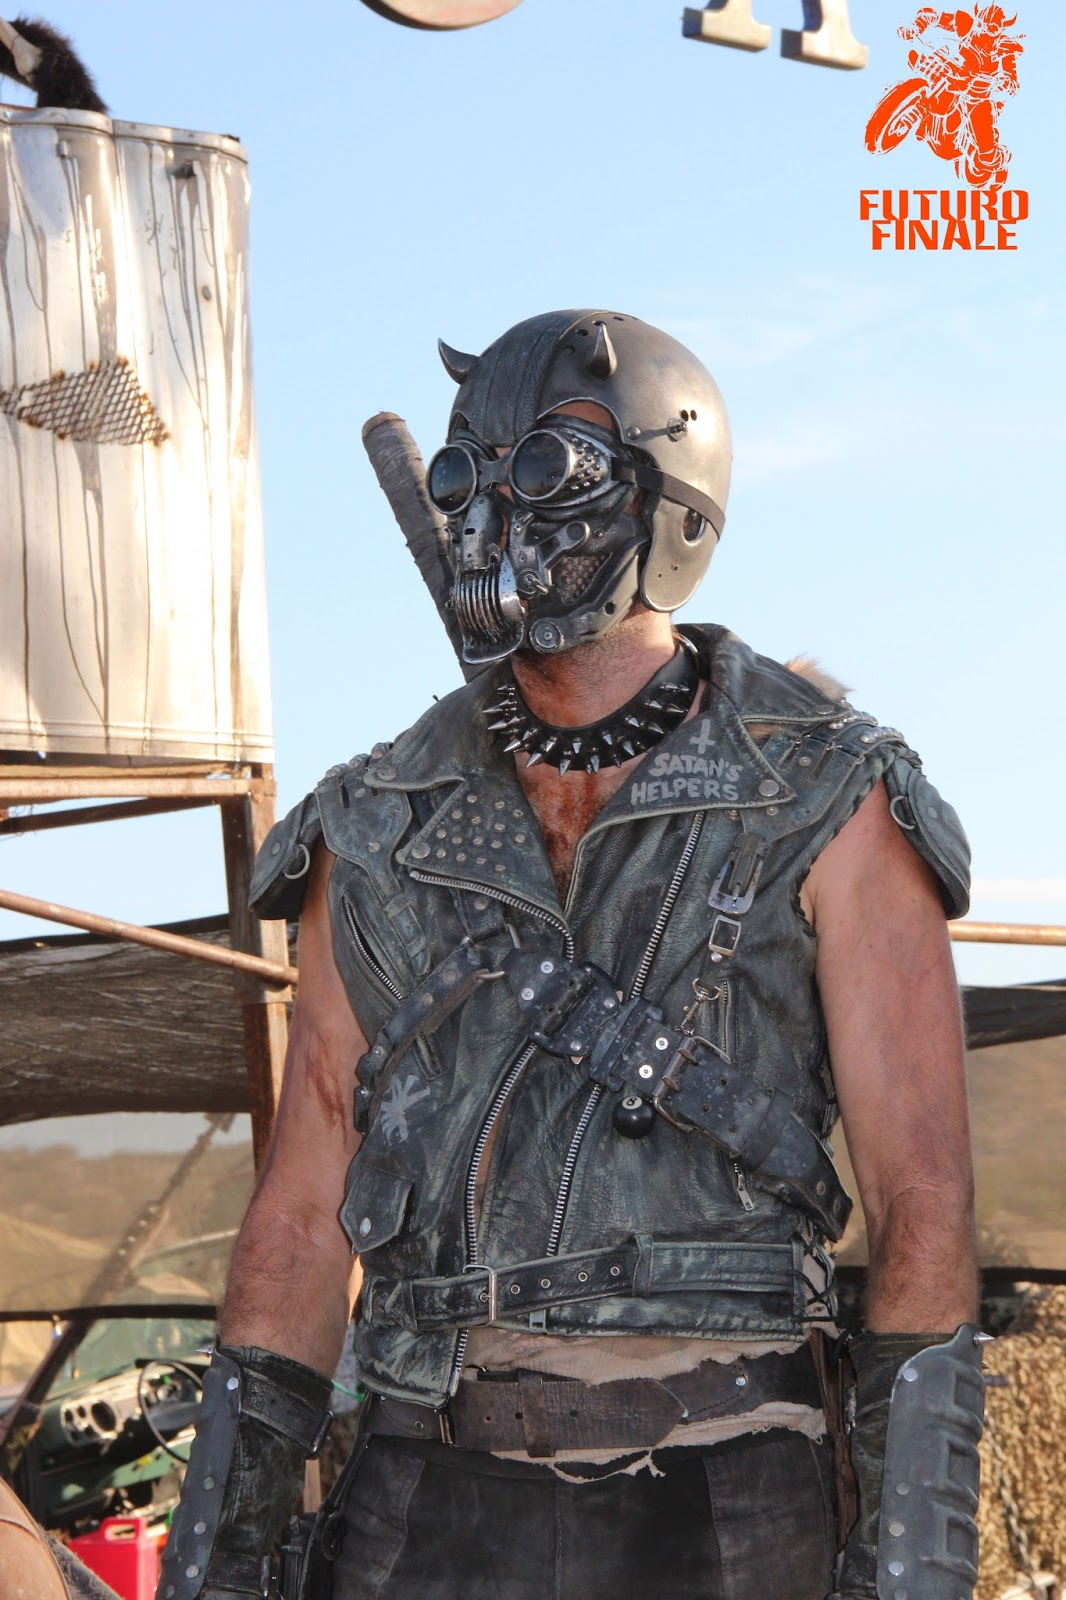 Mad Max 2 2017 >> Futuro Finale 2088AD: Wasteland Weekend 2015 Costume Contest.